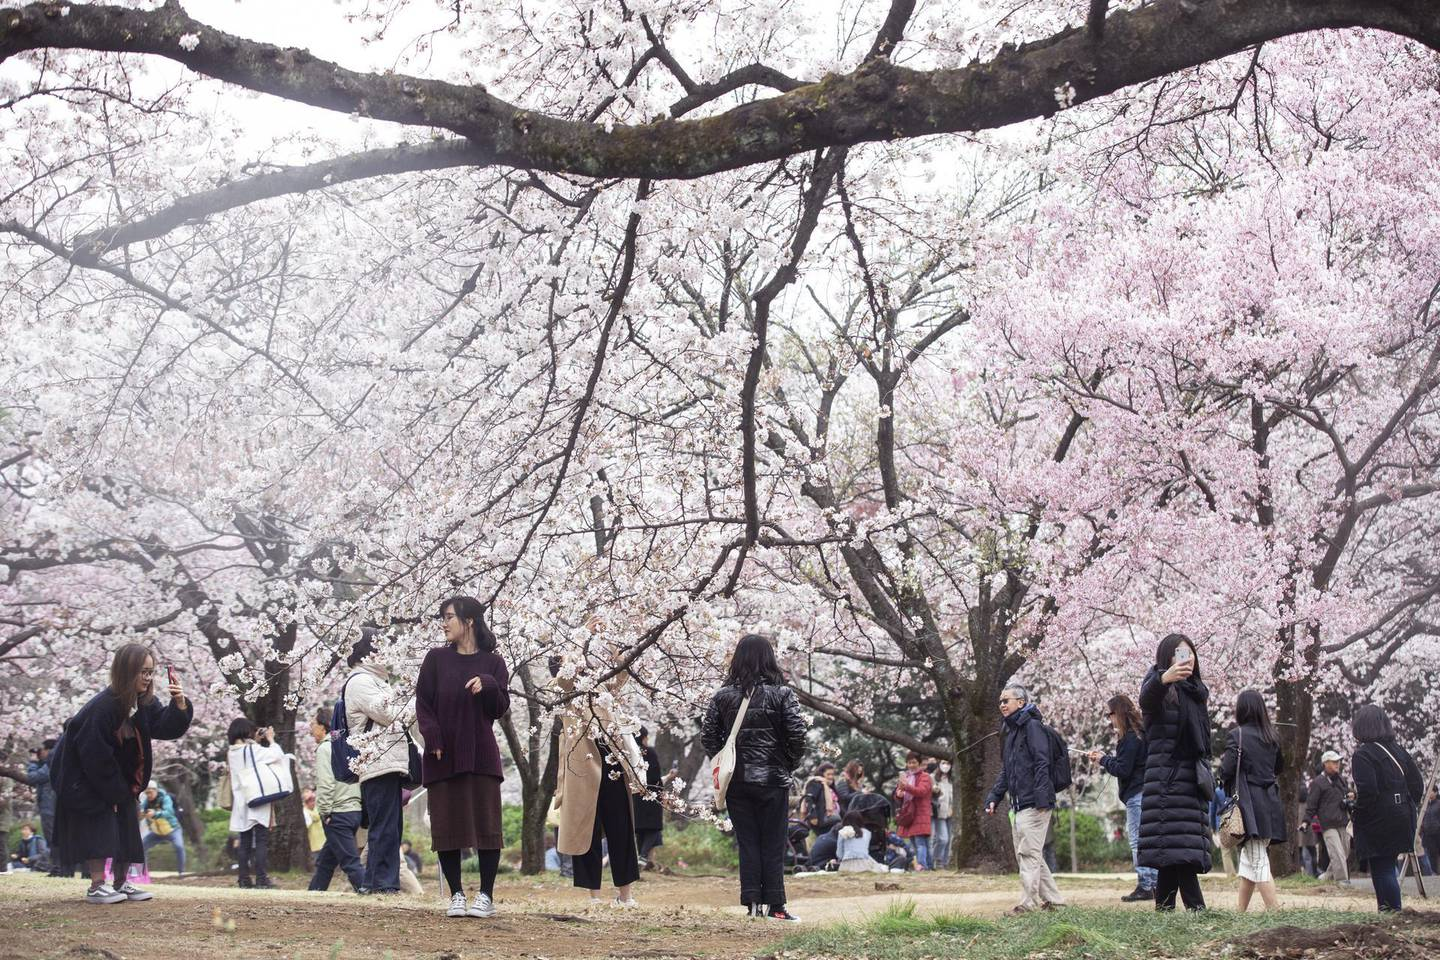 People photograph cherry trees in bloom at Shinjuku Gyoen in Tokyo, Japan, on Friday, March 29, 2019. Over the course of a few weeks, cherry trees across the country burst into bloom, painting the country in shades of pink and white. It's become a national obsession with growing global appeal—and it's a boon to Japan's economy. Photographer: Shiho Fukada/Bloomberg